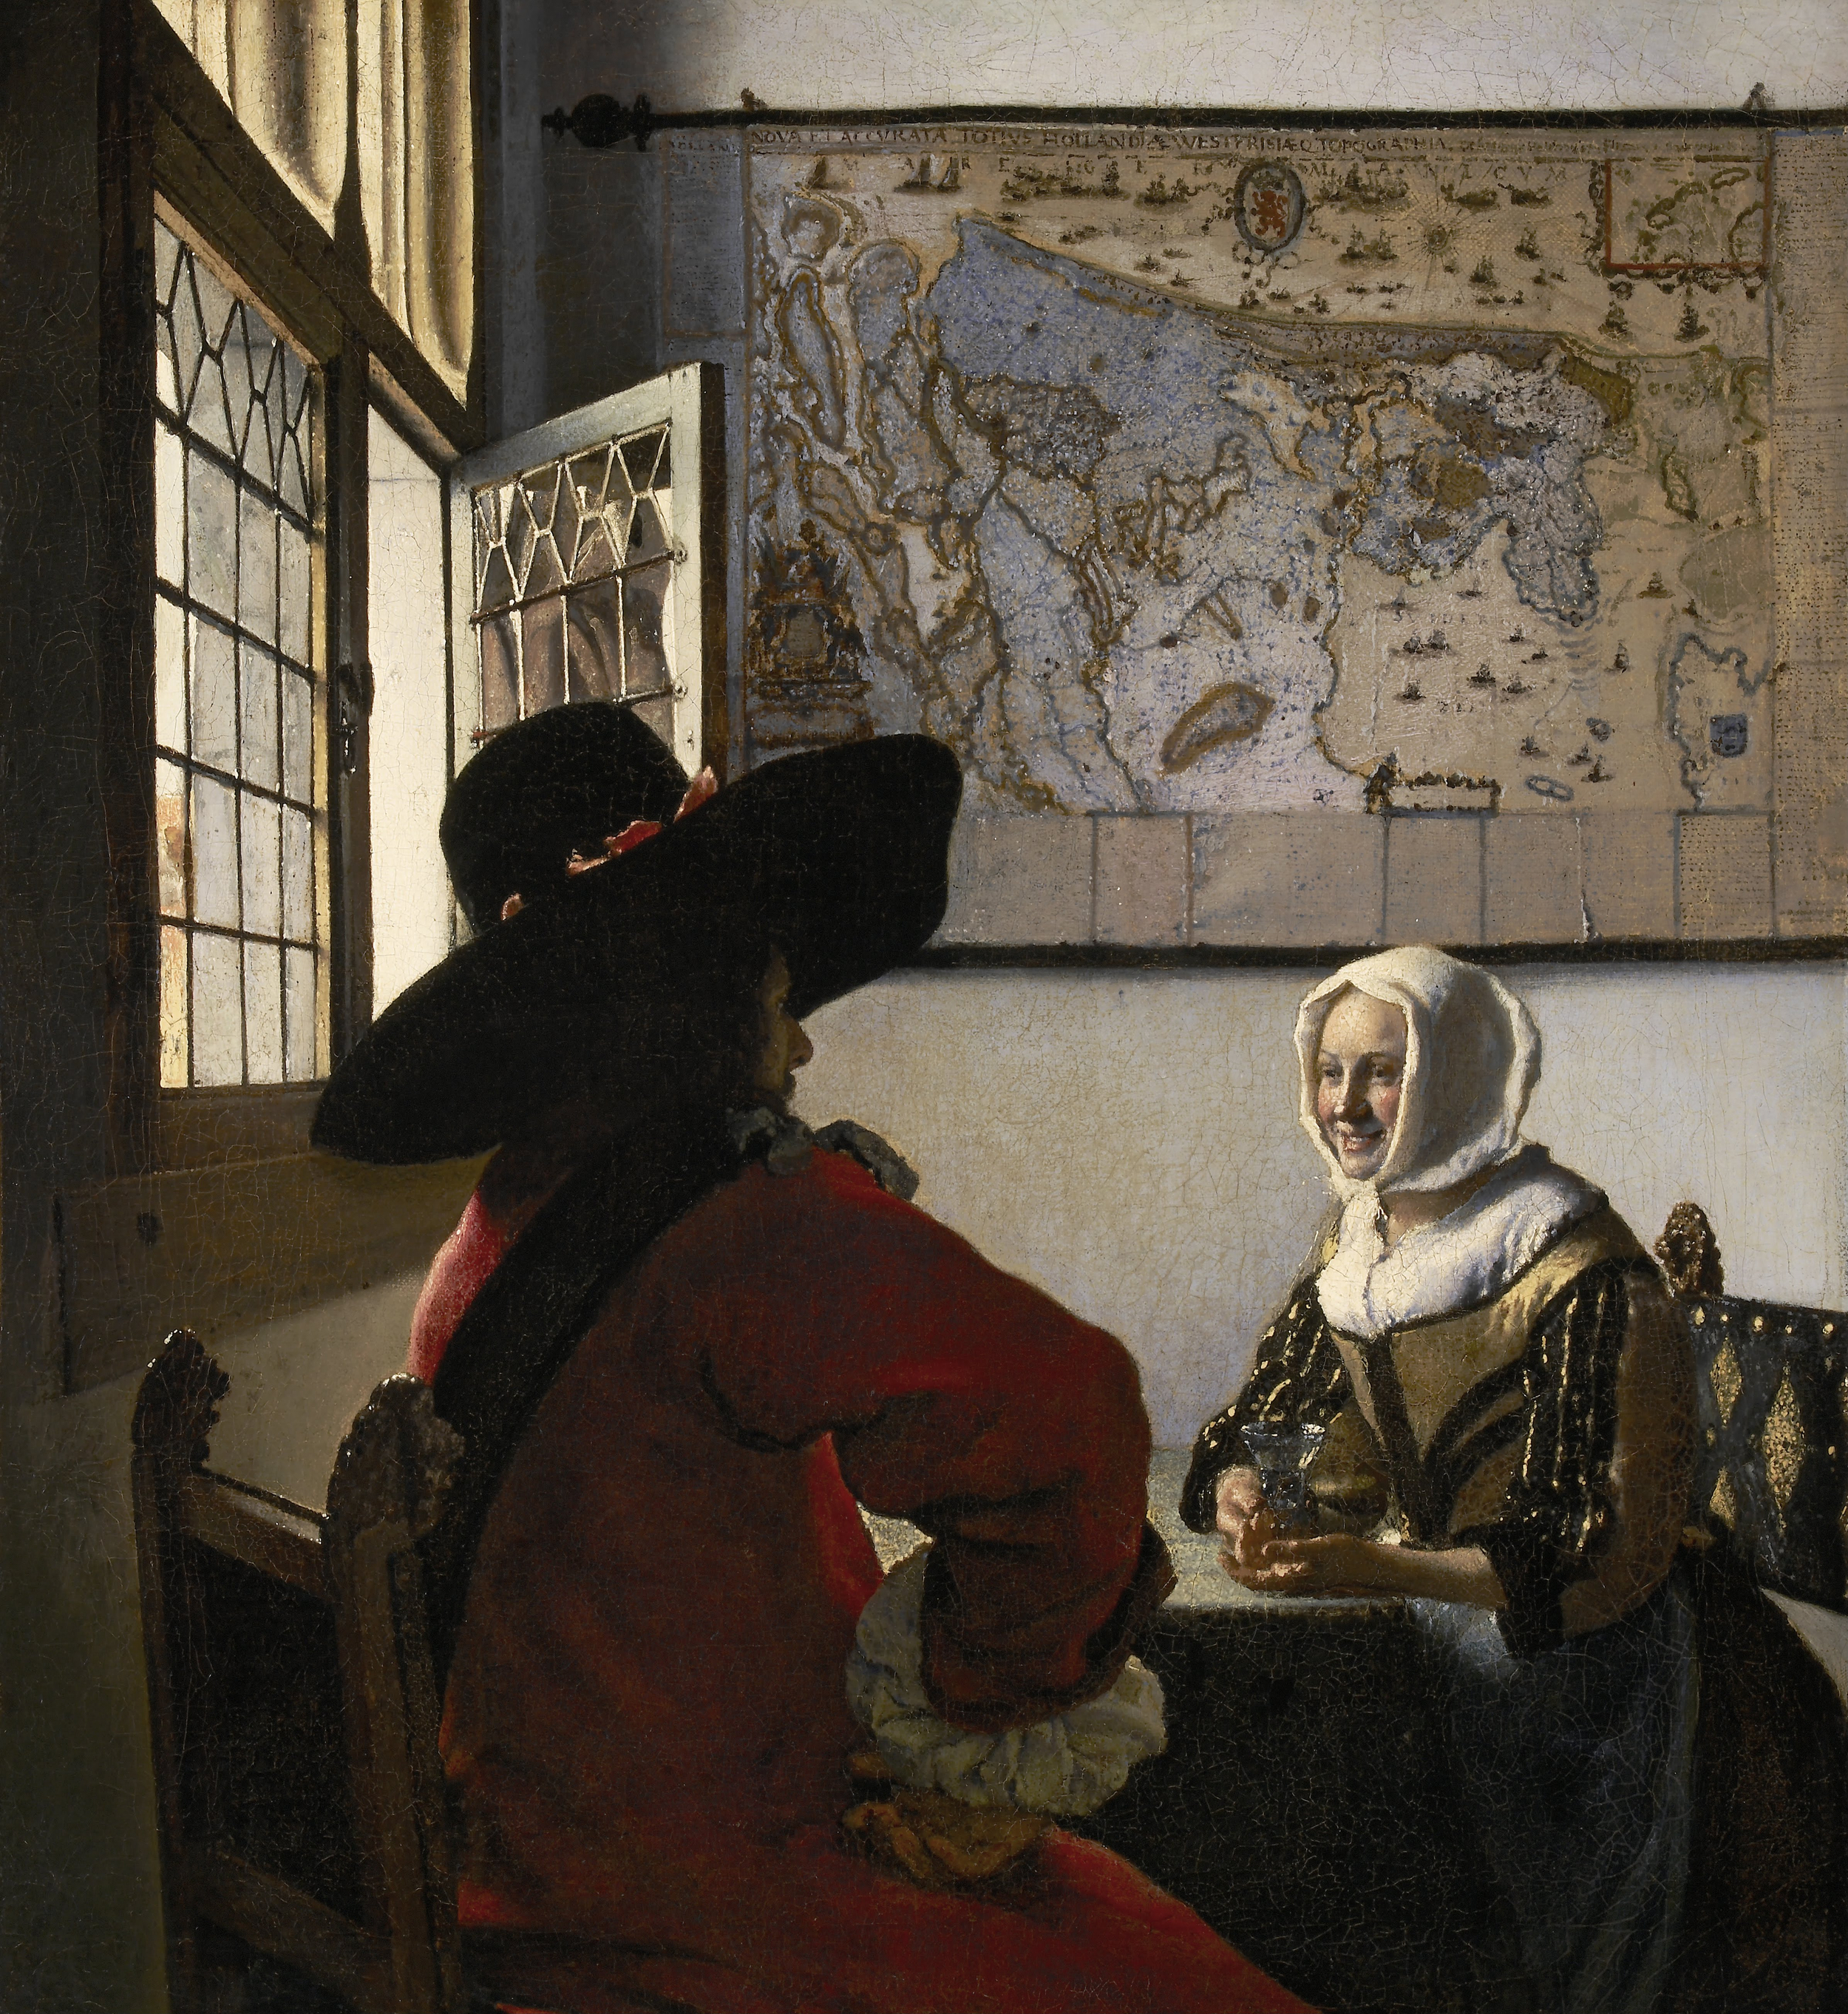 Johannes Vermeer, Officer and Laughing Girl, 1657, Oil on canvas